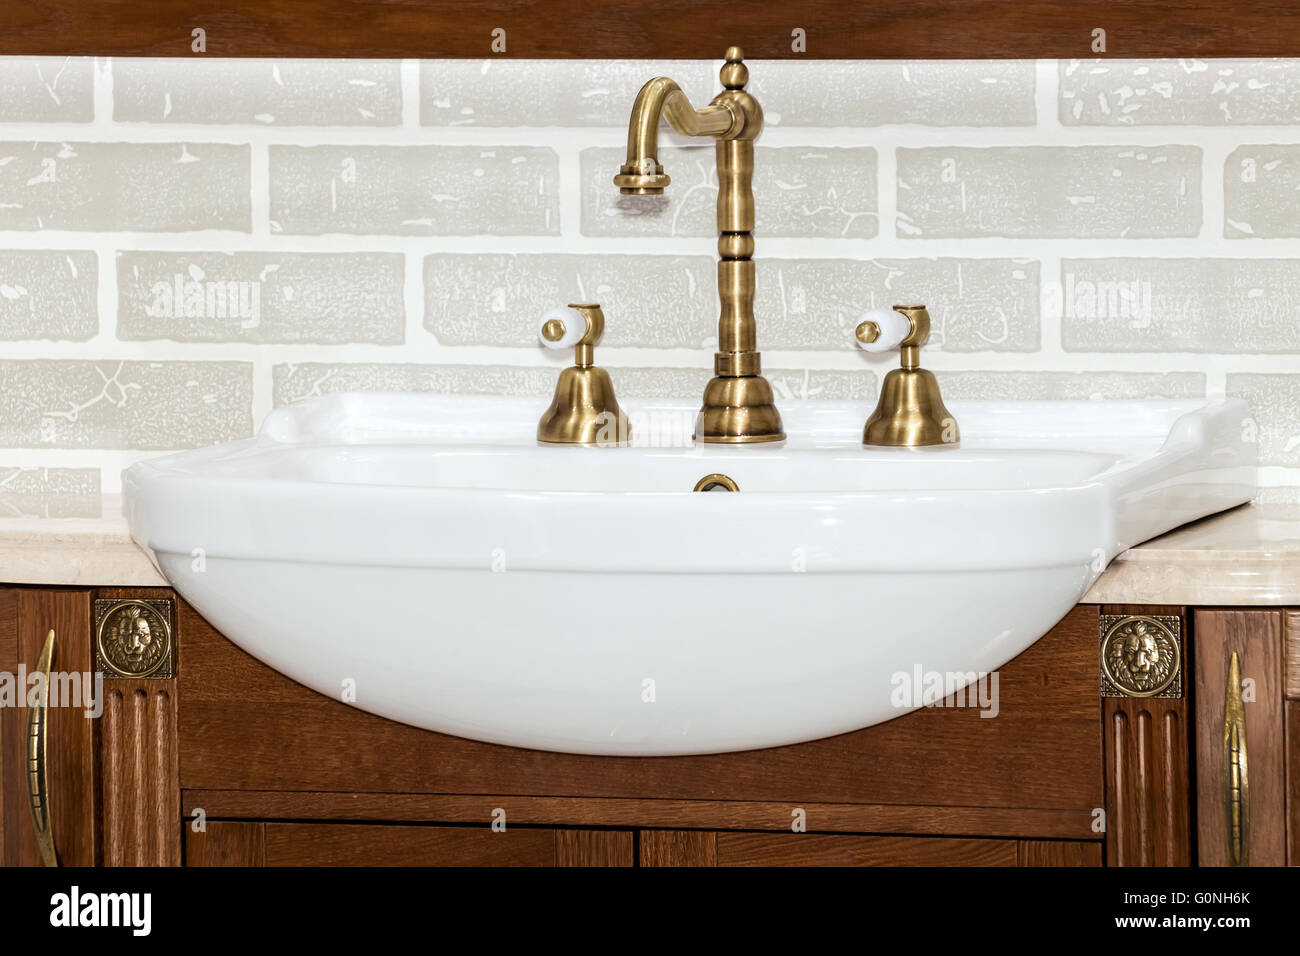 Gold faucet in bathroom Stock Photo: 103736715 - Alamy